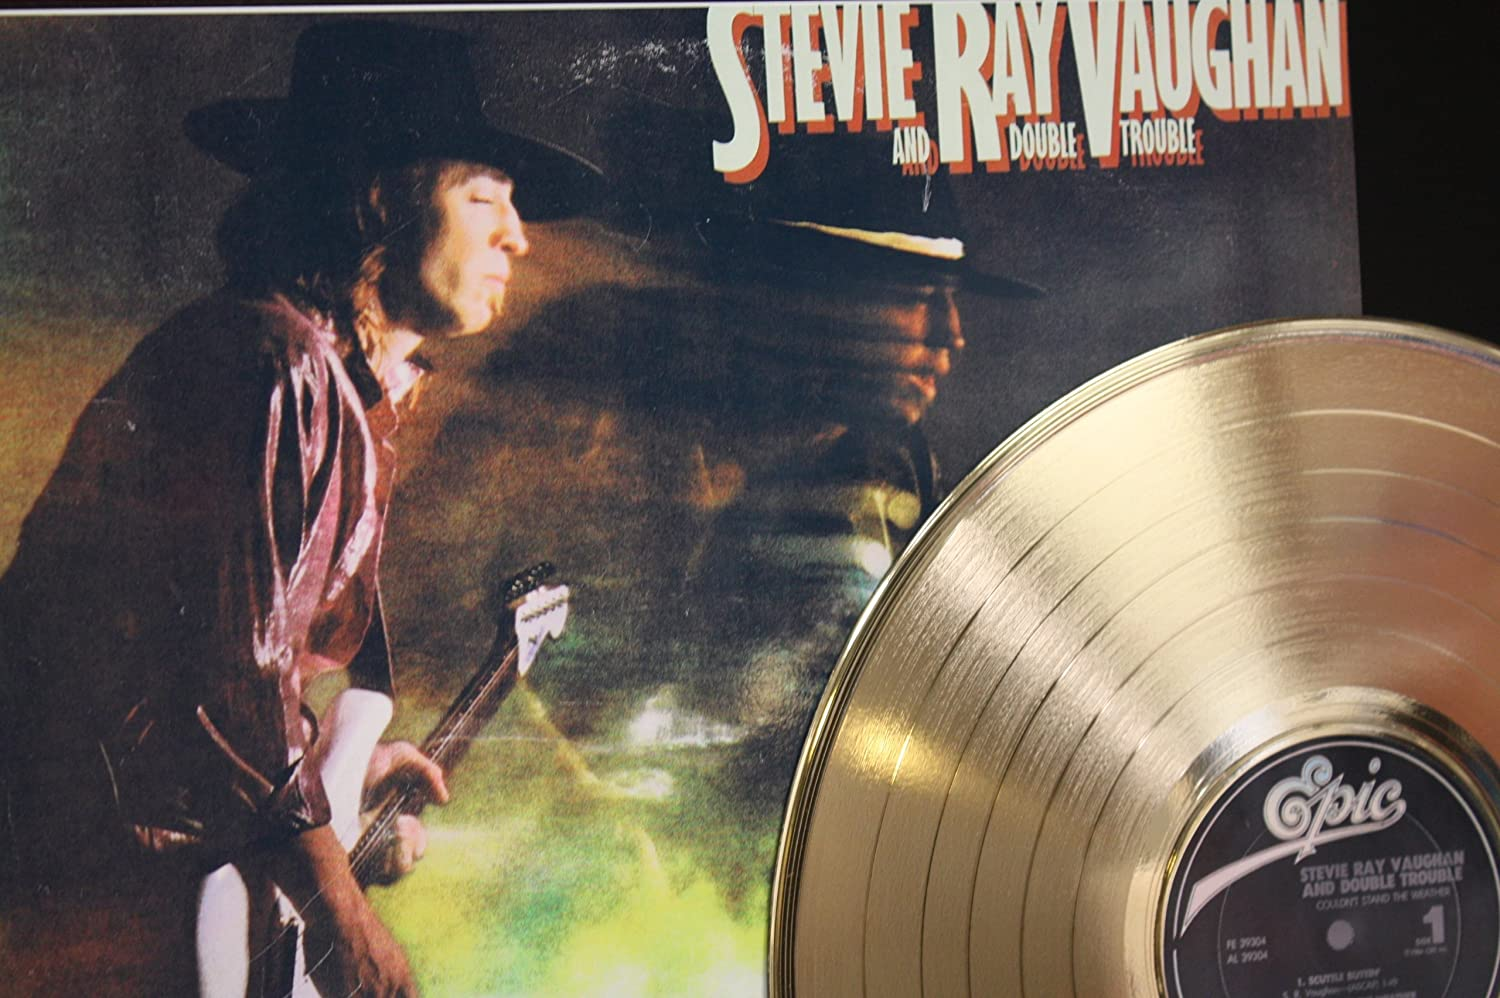 Stevie Ray Vaughan Couldn'T Stand The Weather Gold LP Record LTD Edition Display the paper dolls world record edition